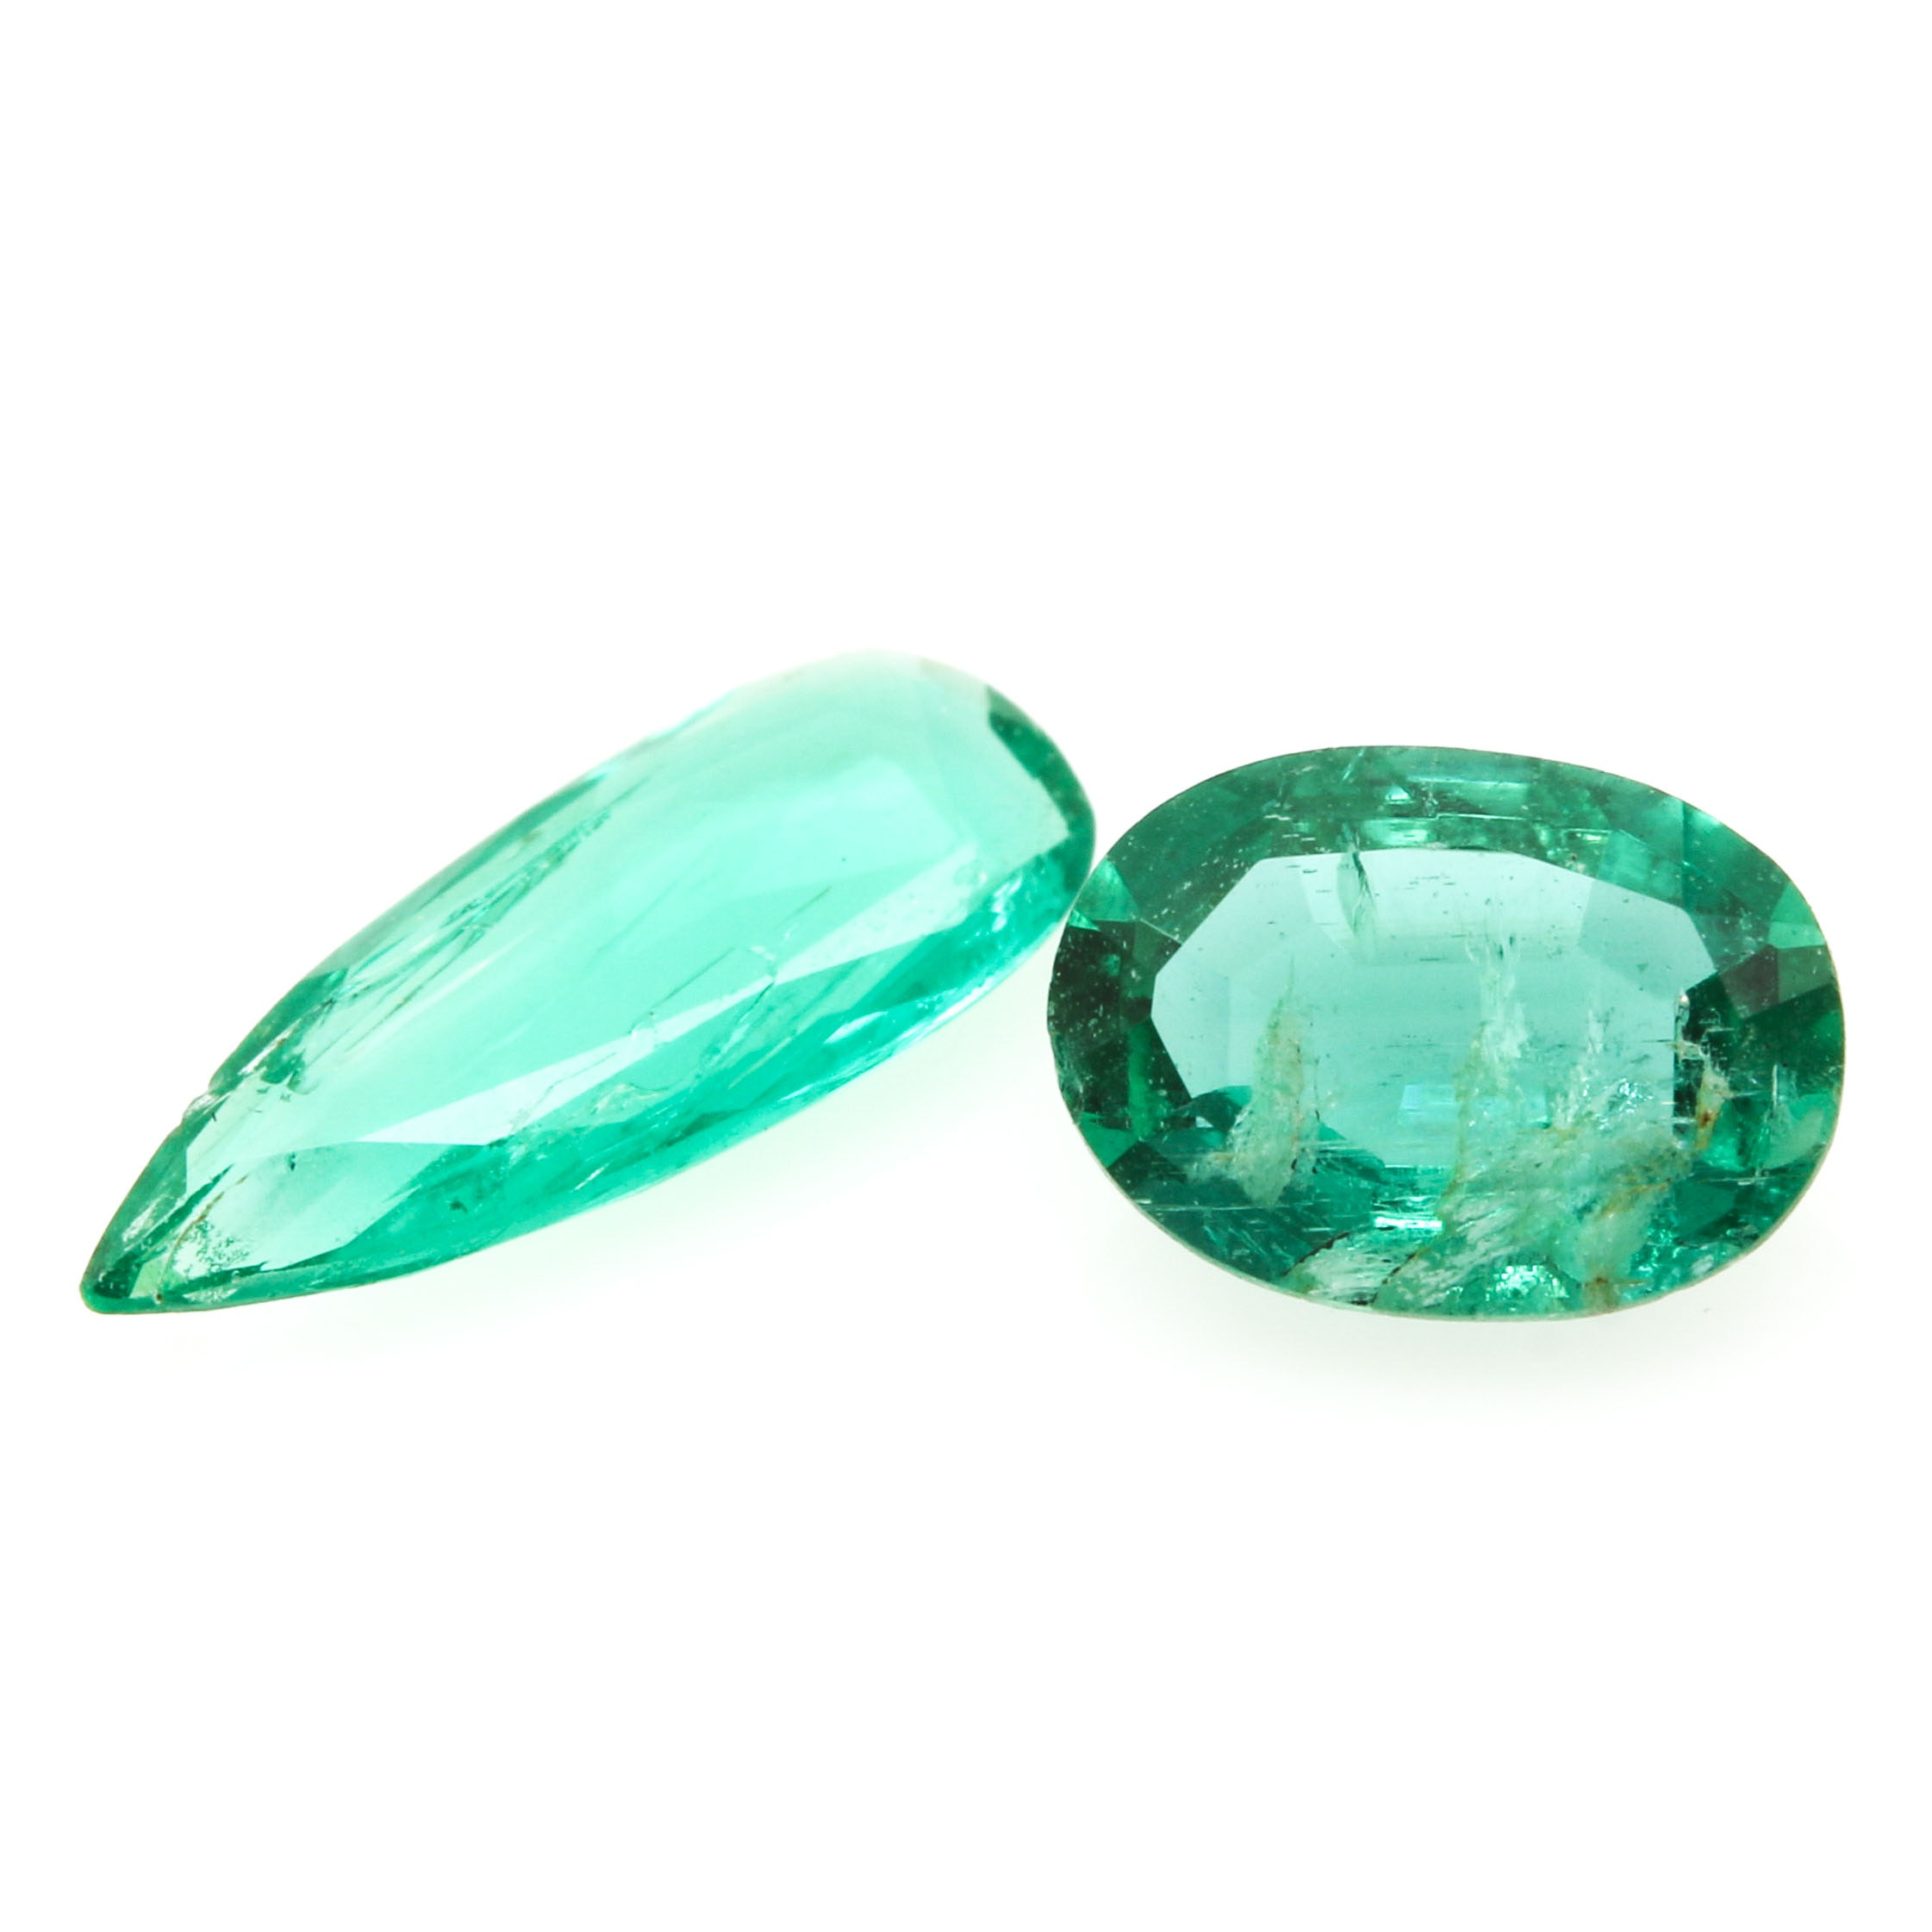 Selection of Two Loose Emeralds